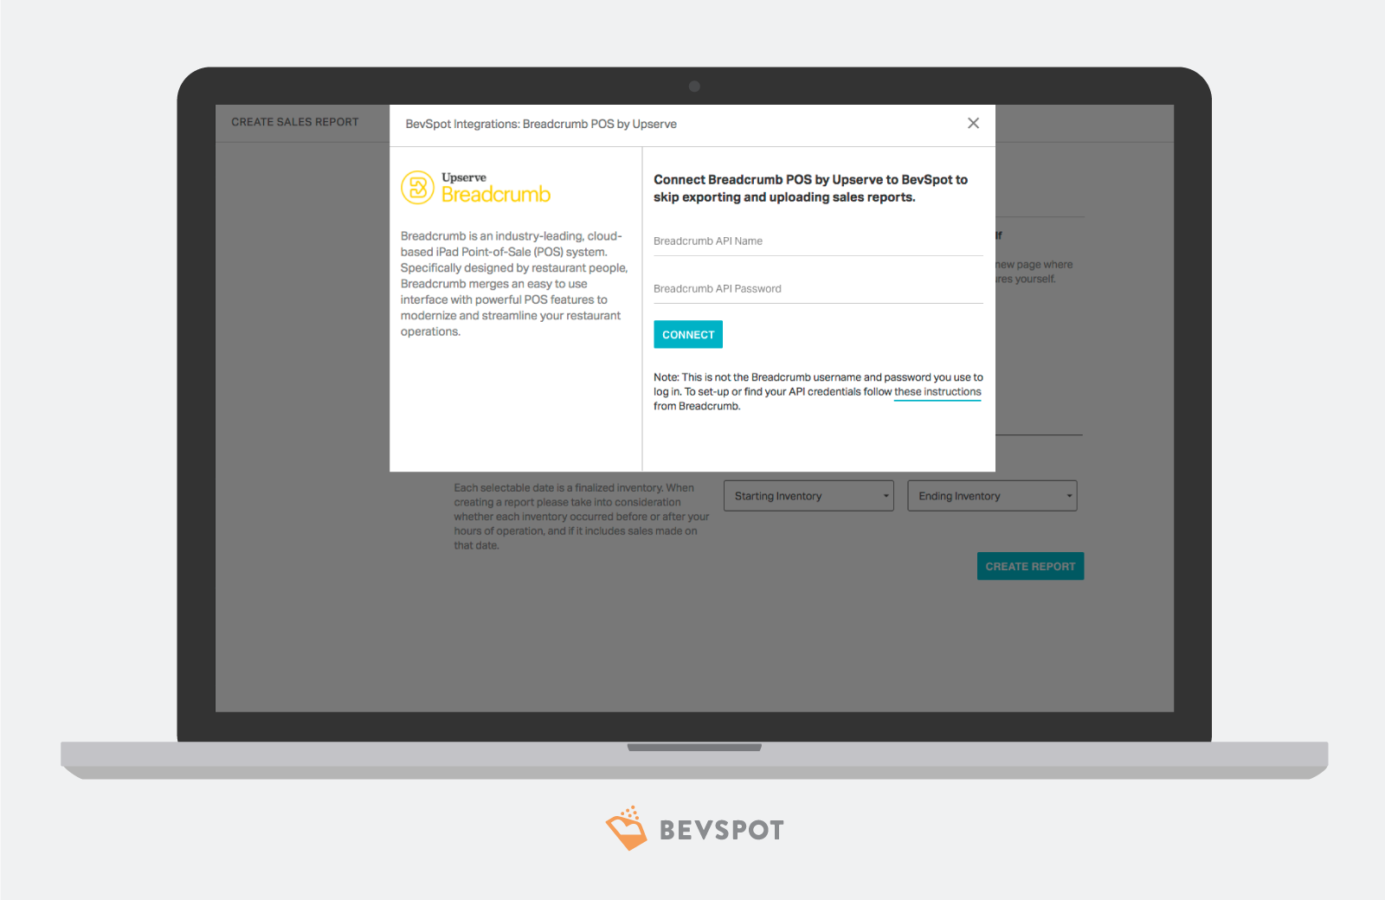 2017-bevspot-sales-reporting-integration-breadcrumb-02-1385x900